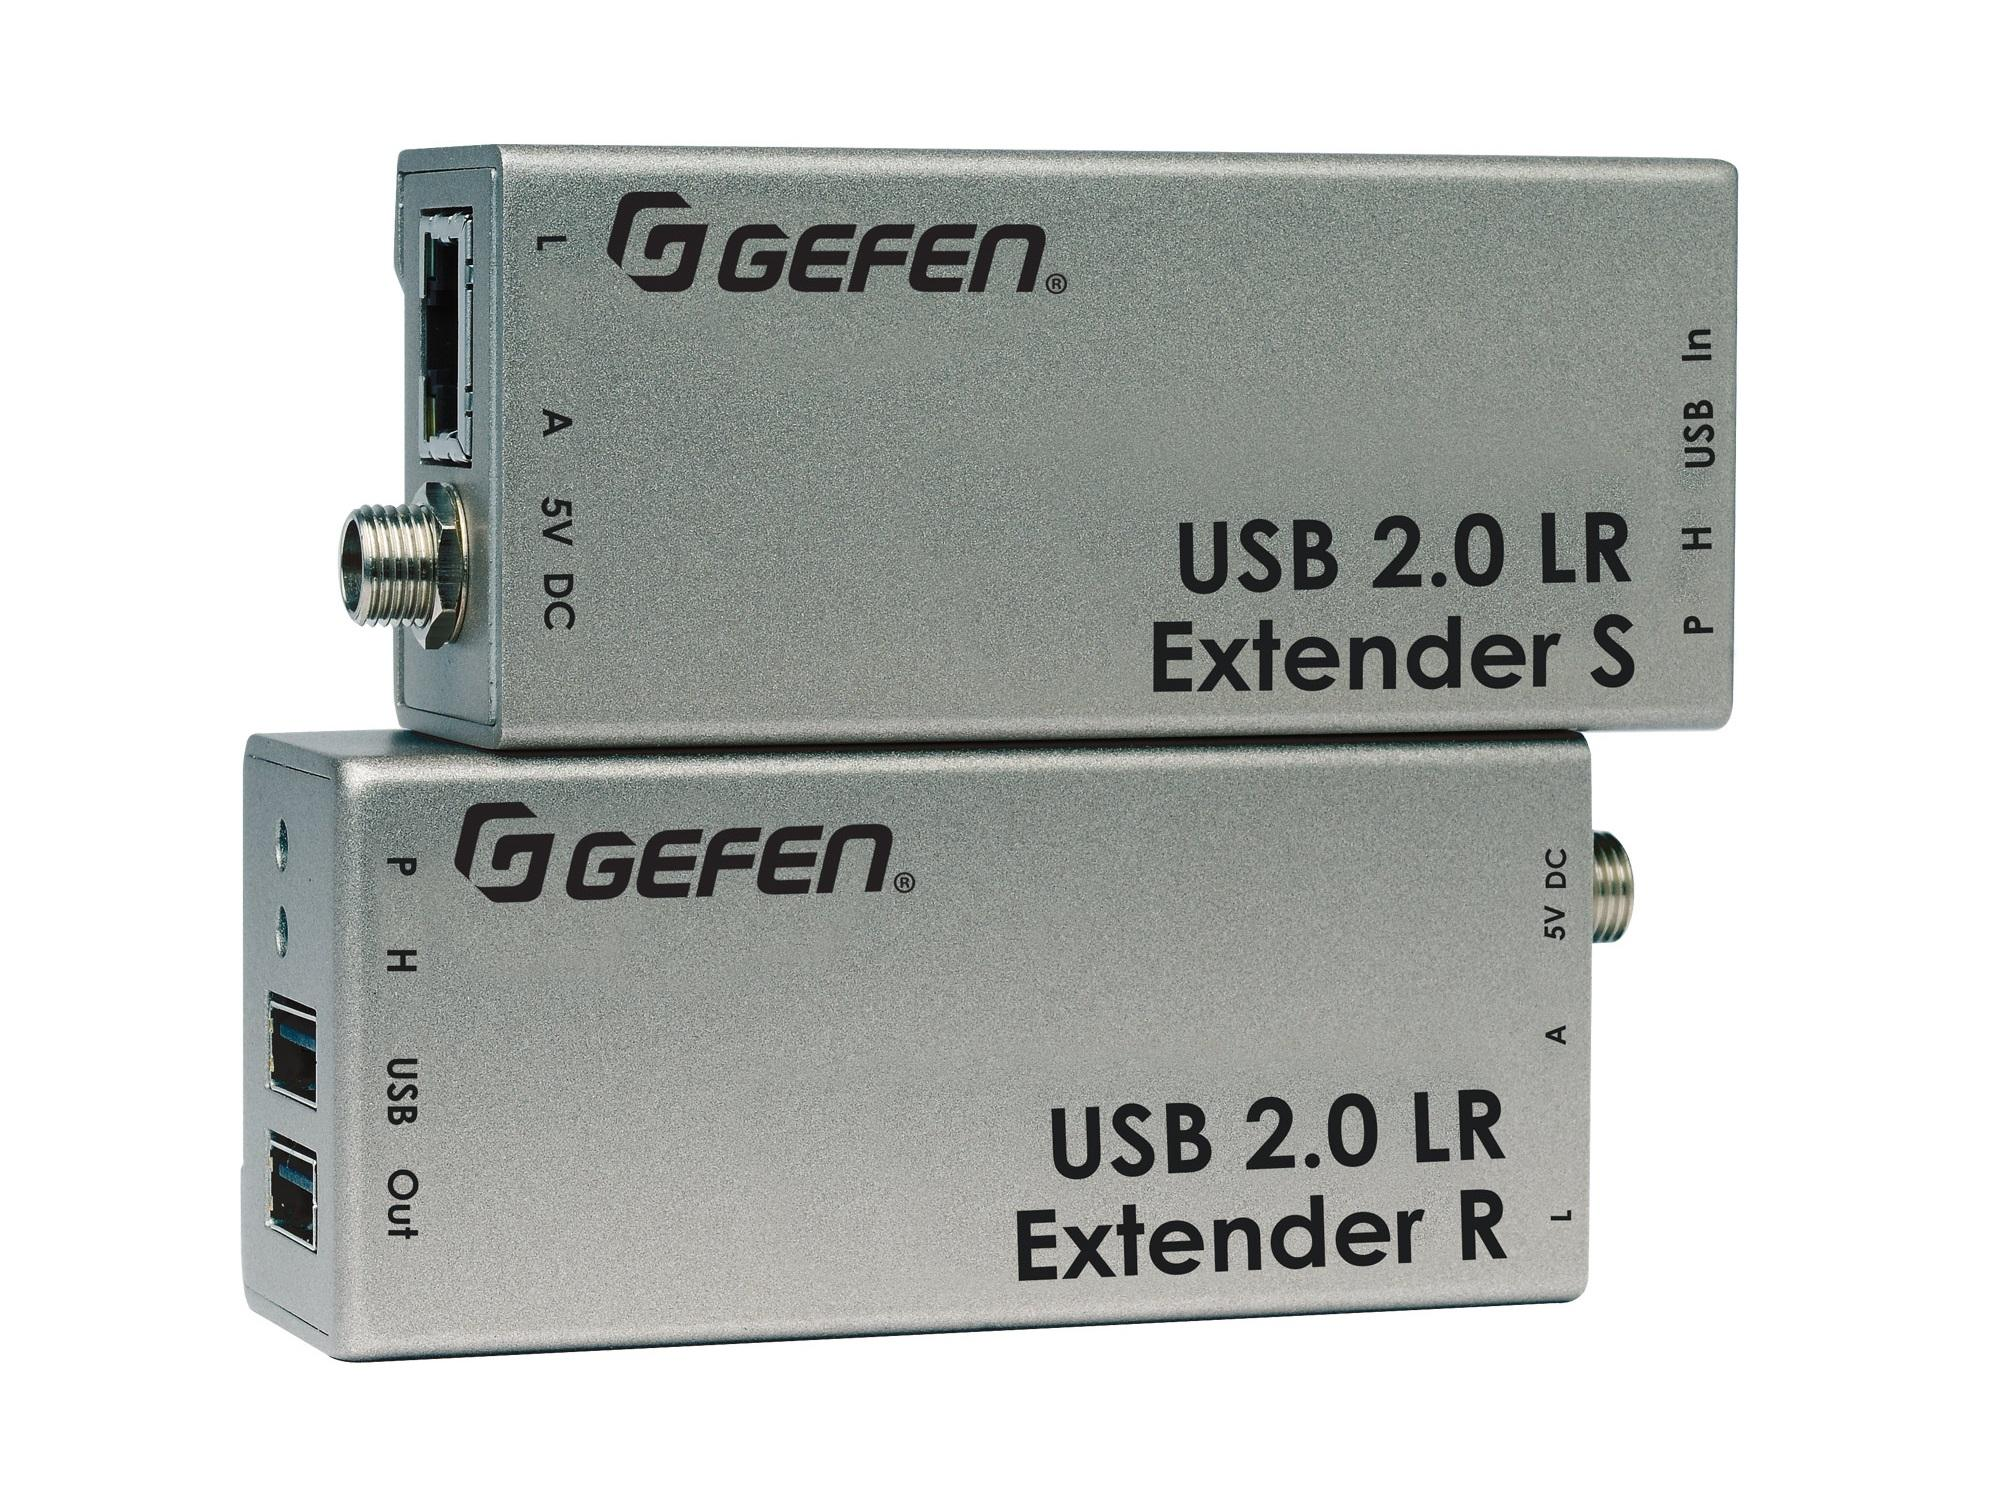 EXT-USB2.0-LR USB 2.0 Extender (Receiver/Sender) Kit by Gefen